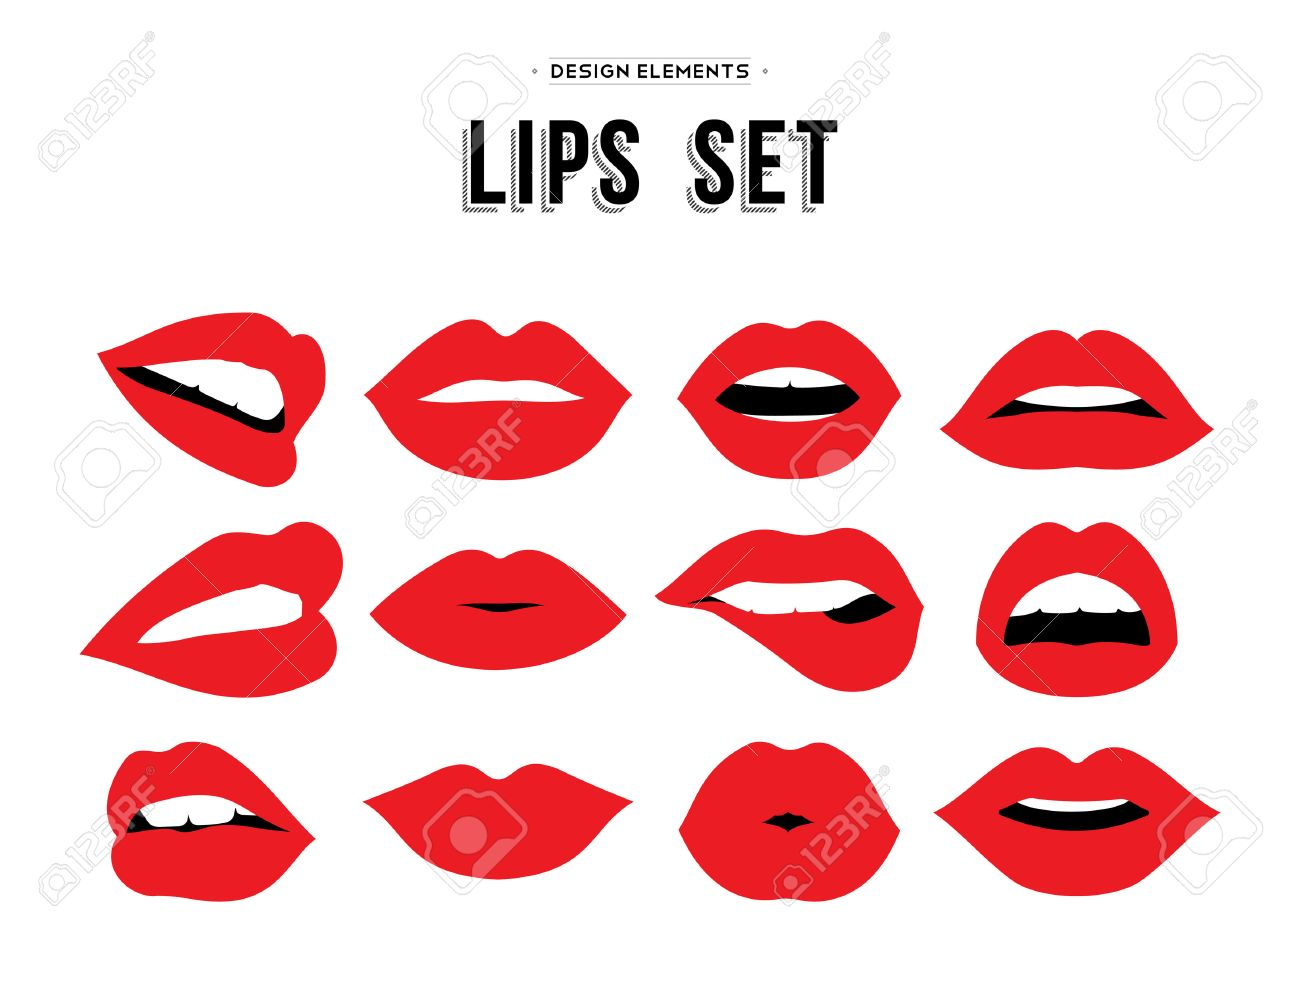 Woman's lip gestures set. Girl mouths close up with red lipstick makeup expressing different emotions.  vector. Stock Vector - 51425560